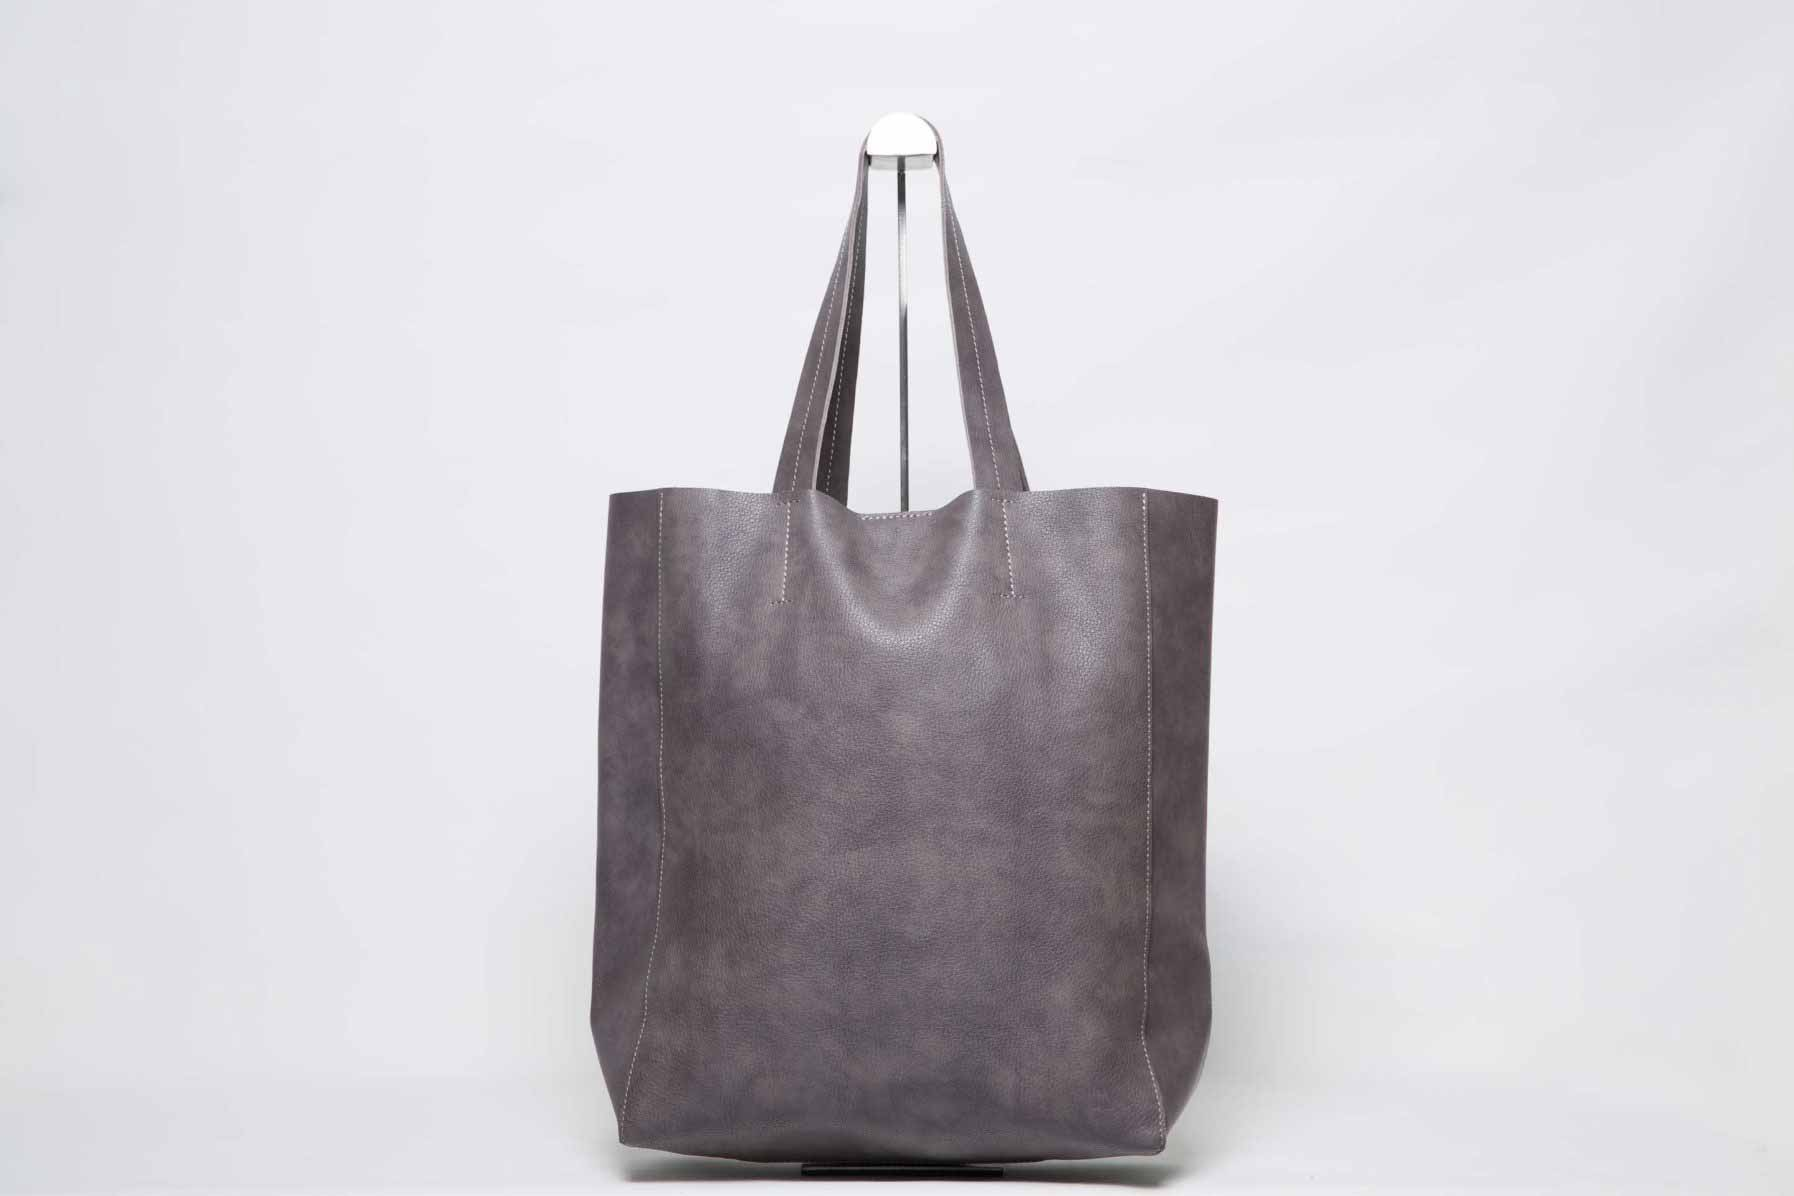 Visuel - Grand Shopper Cuir Gris-Marron sans pompon - ordinari.shop